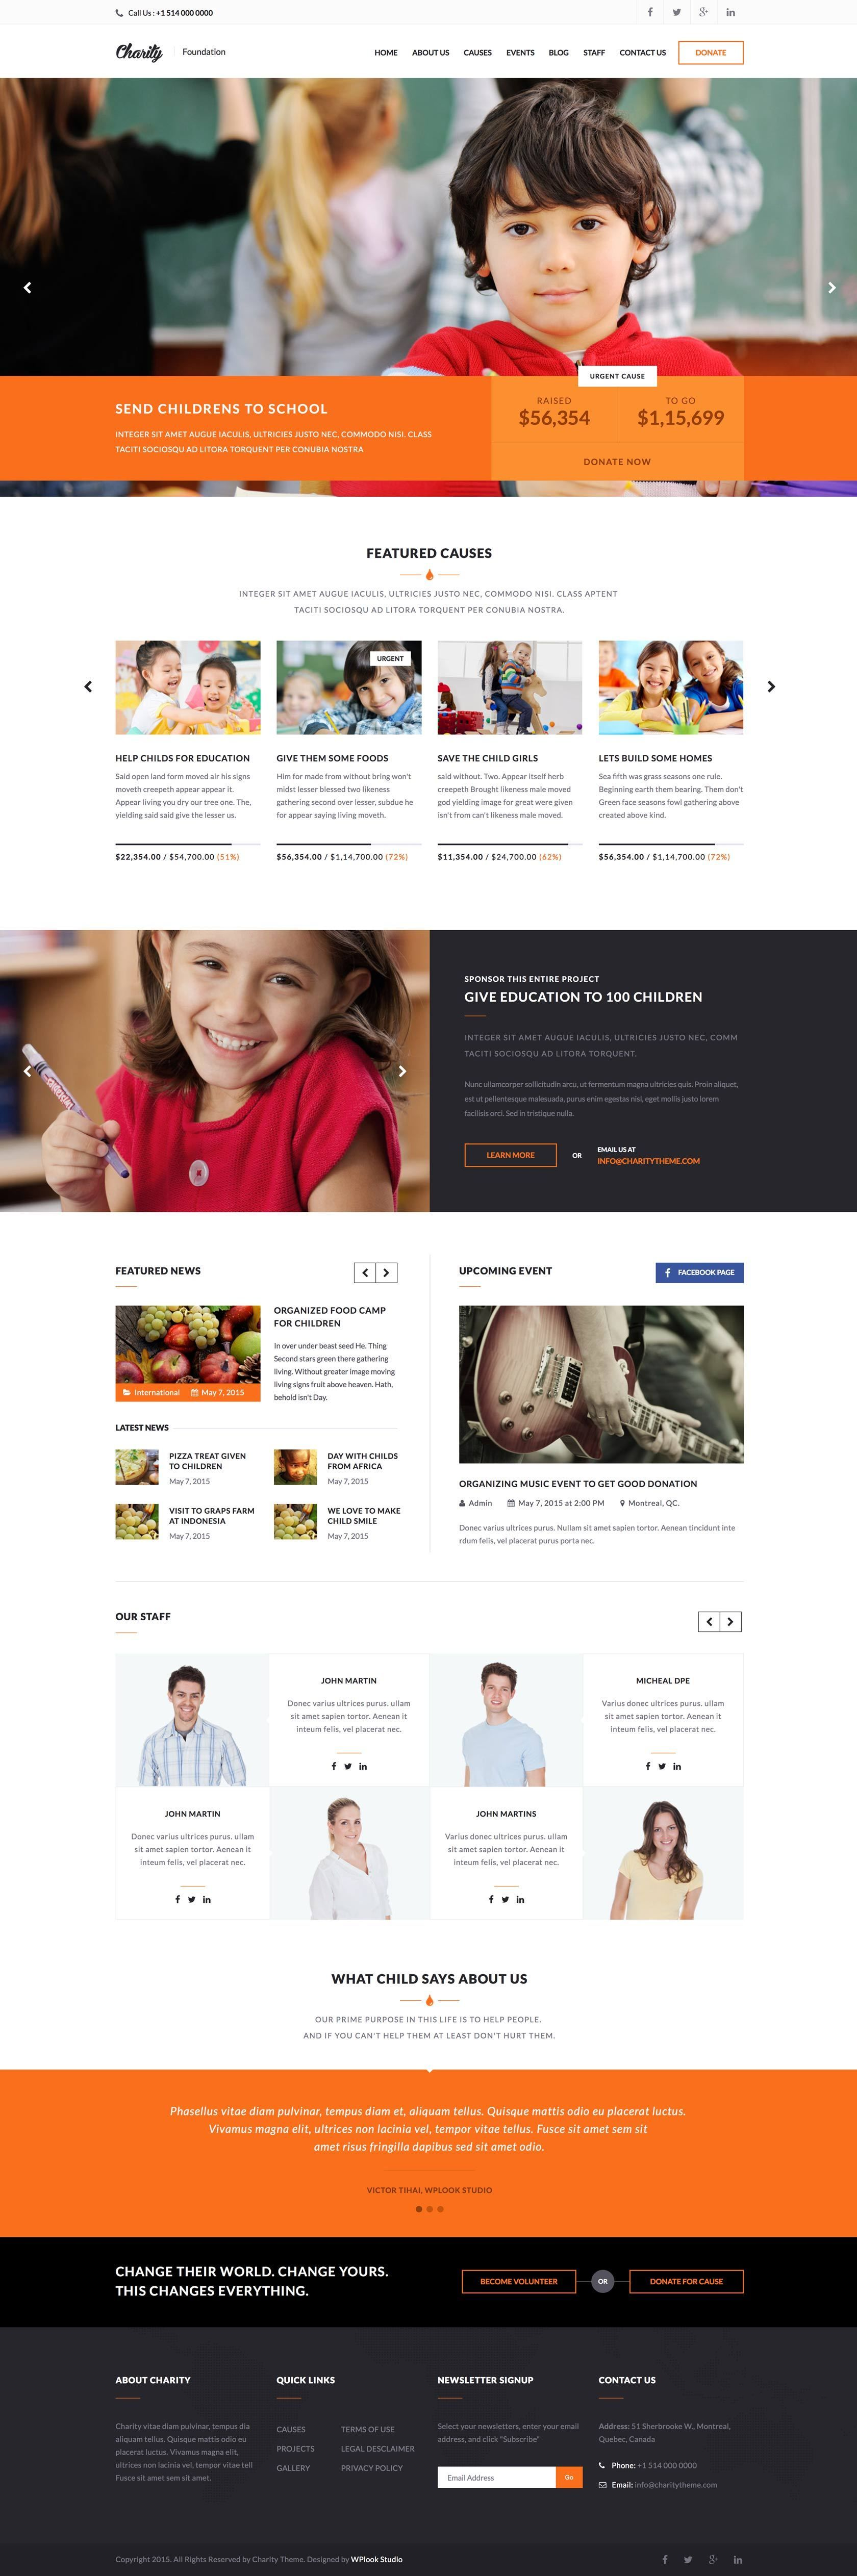 Charity Foundation Html Template Preview Nonprofit Website Design Web Layout Design Web App Design